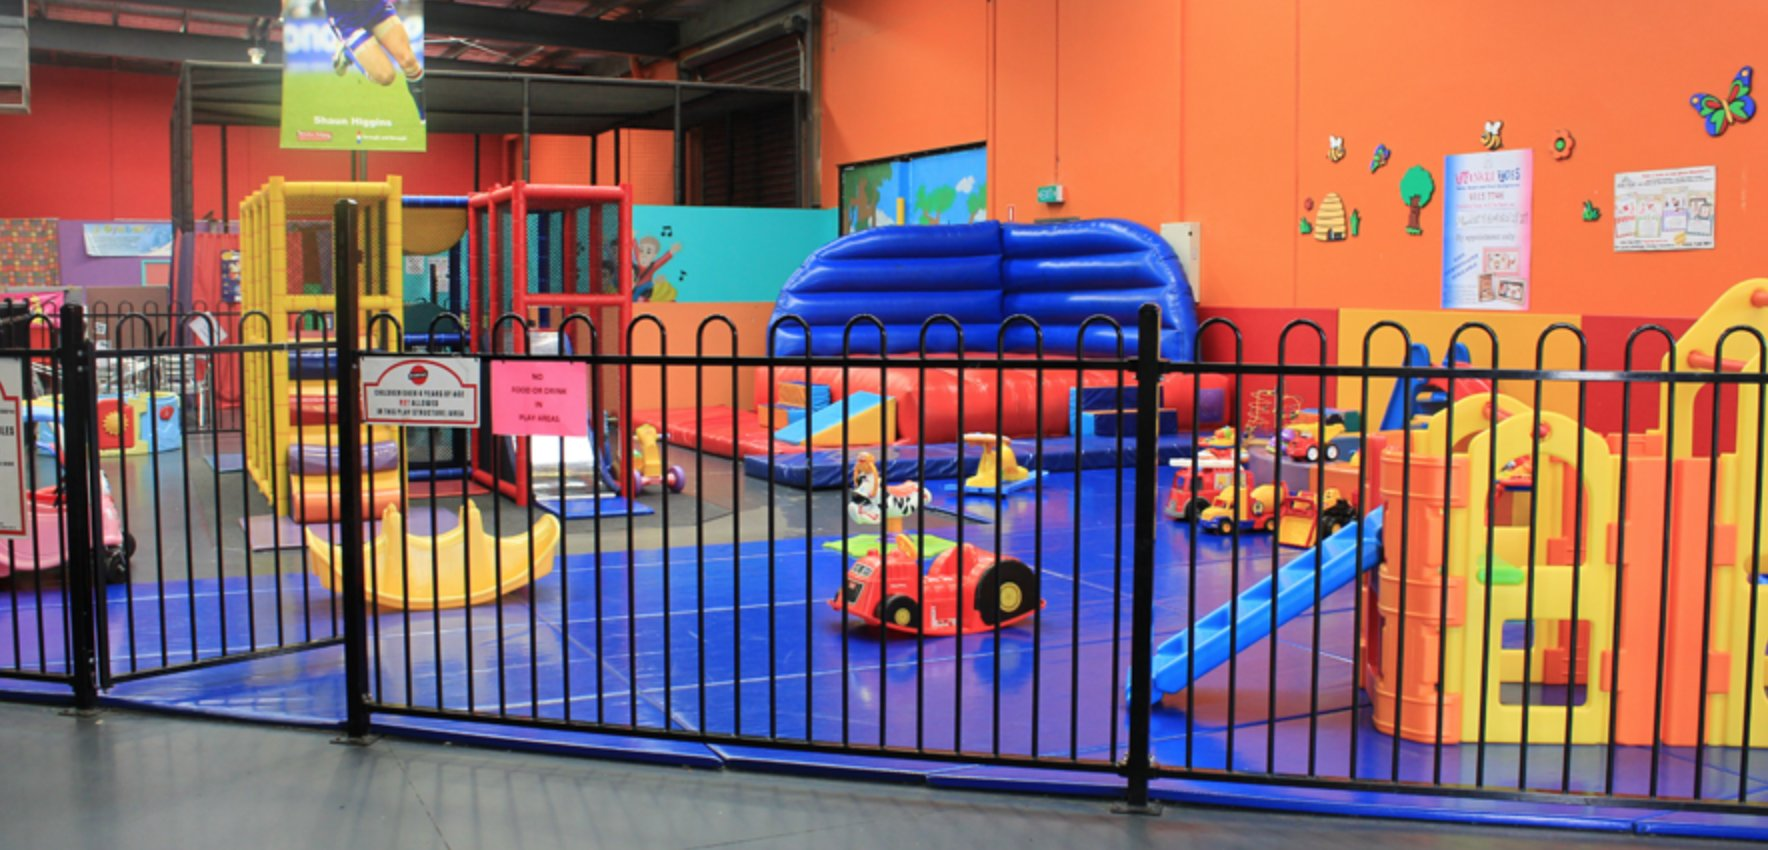 Kidz Digz Playcentre